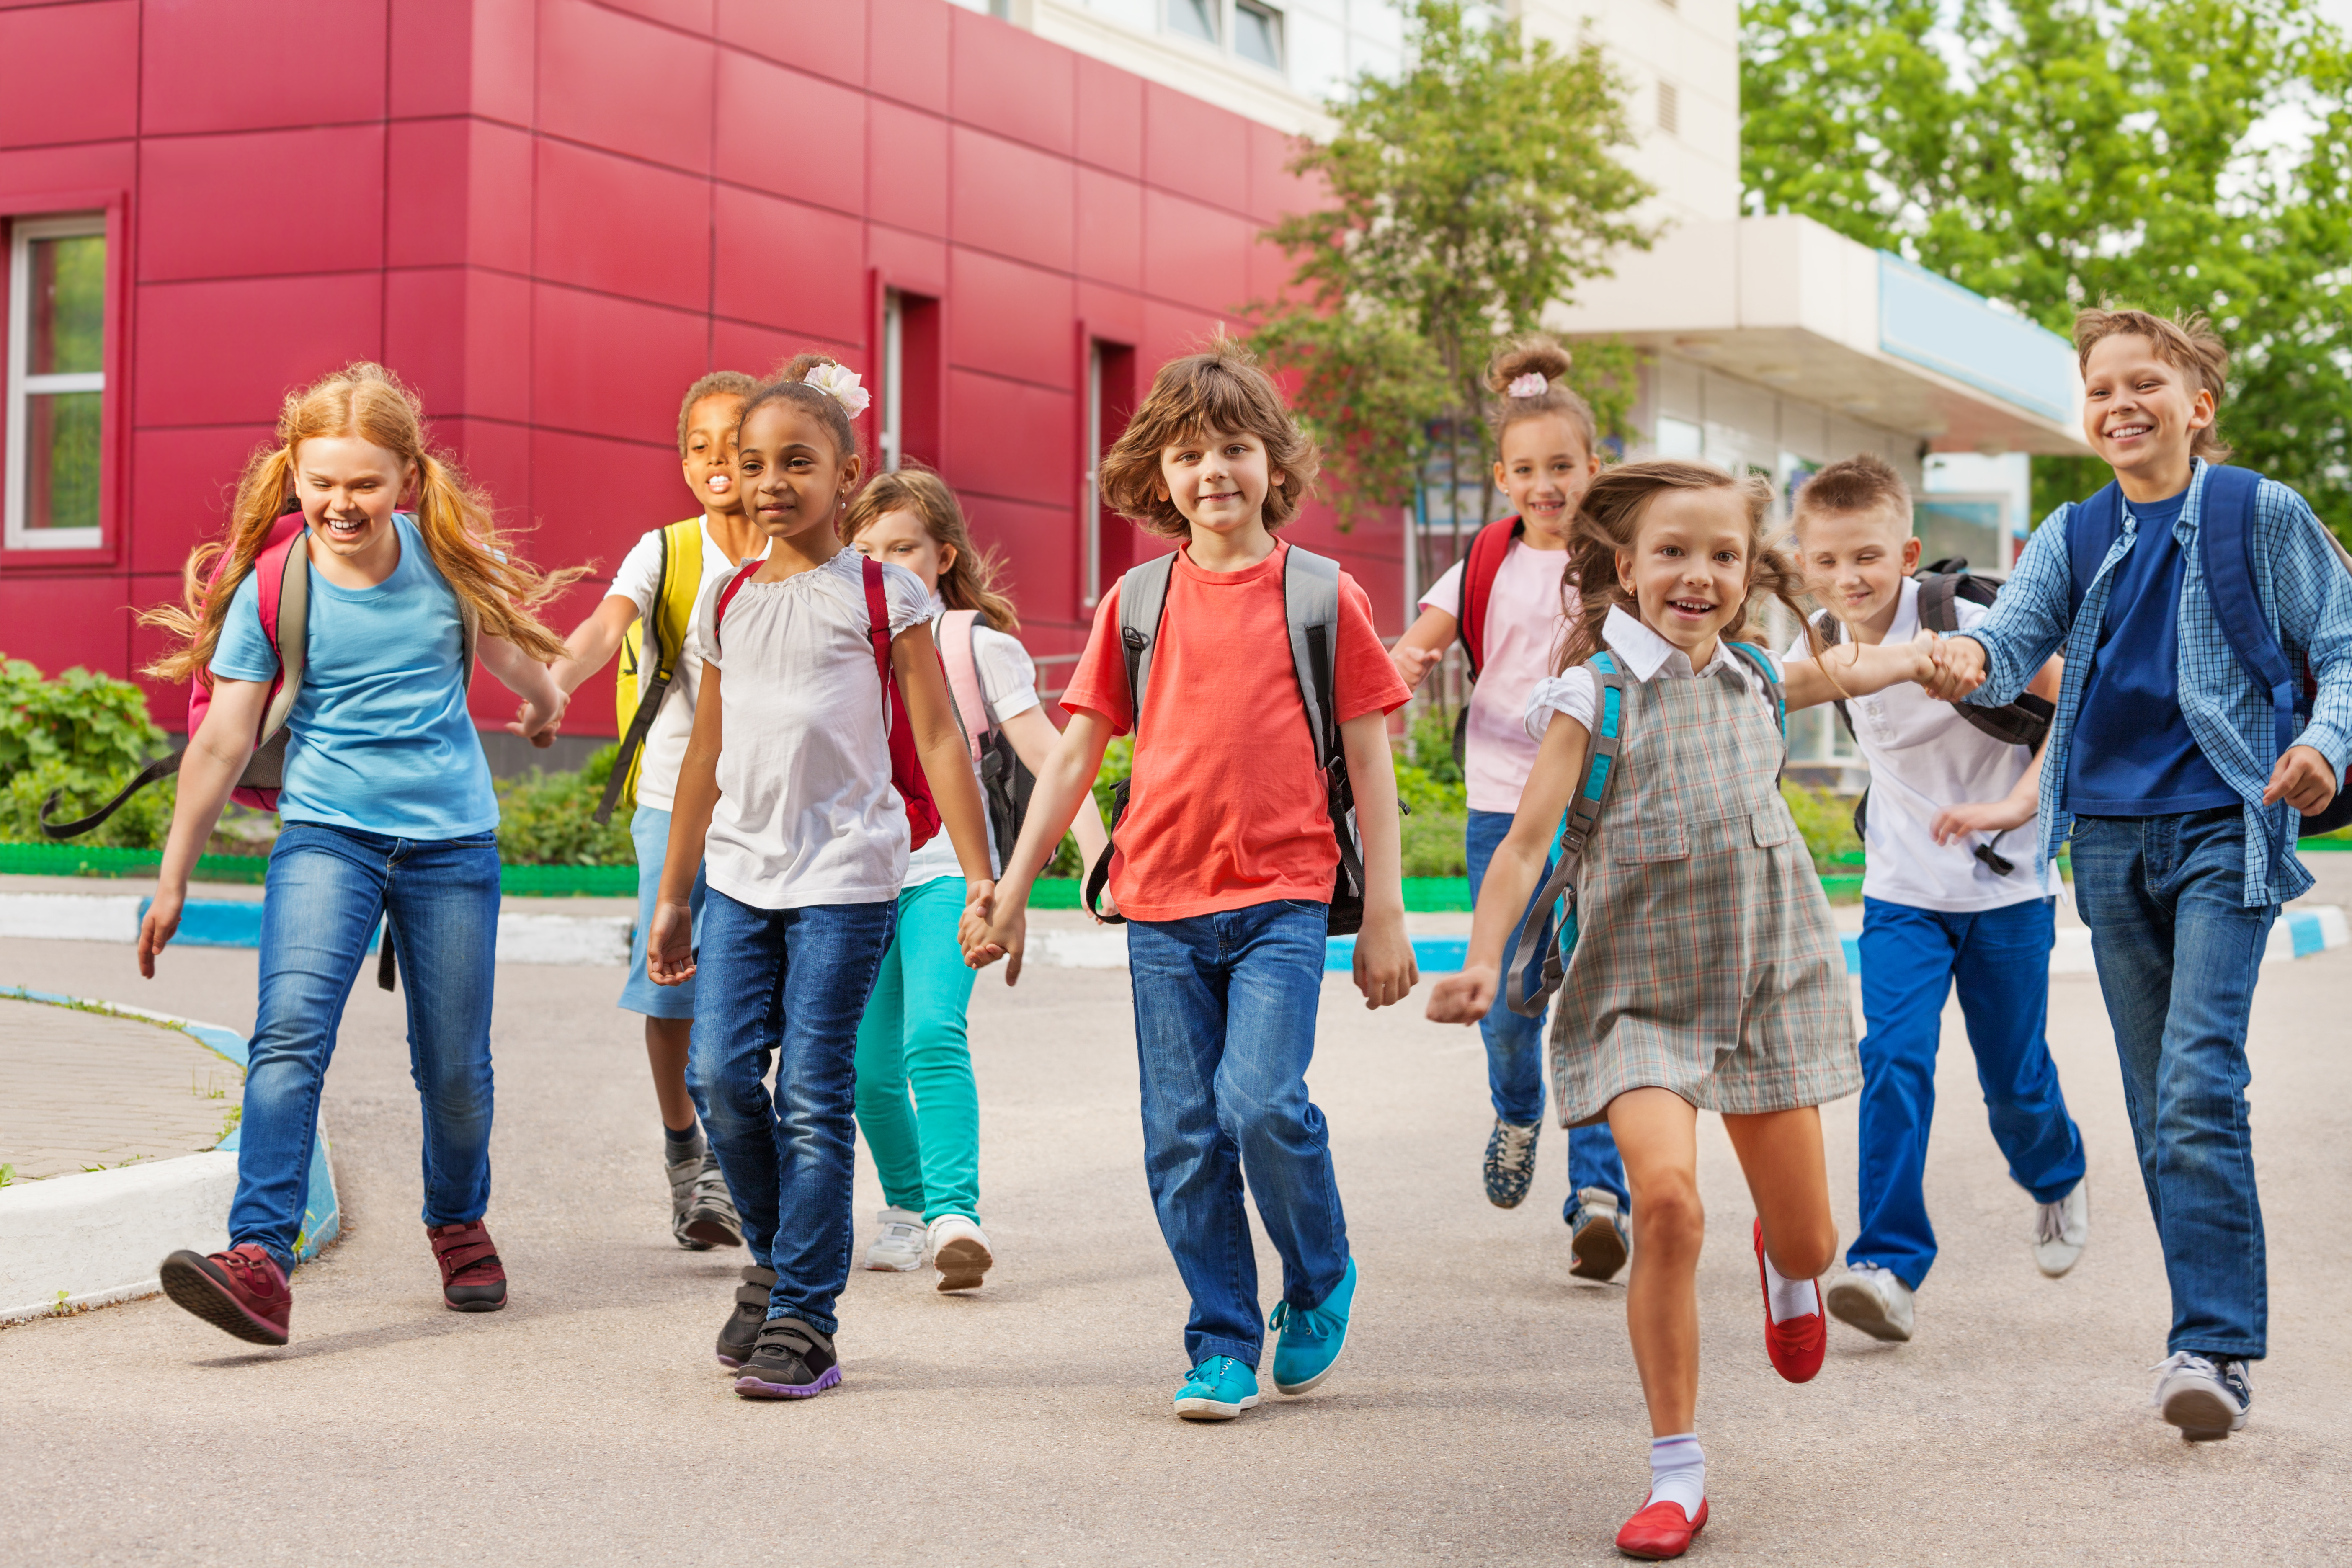 Happy kids with rucksacks walking holding hands near school building during summer day time